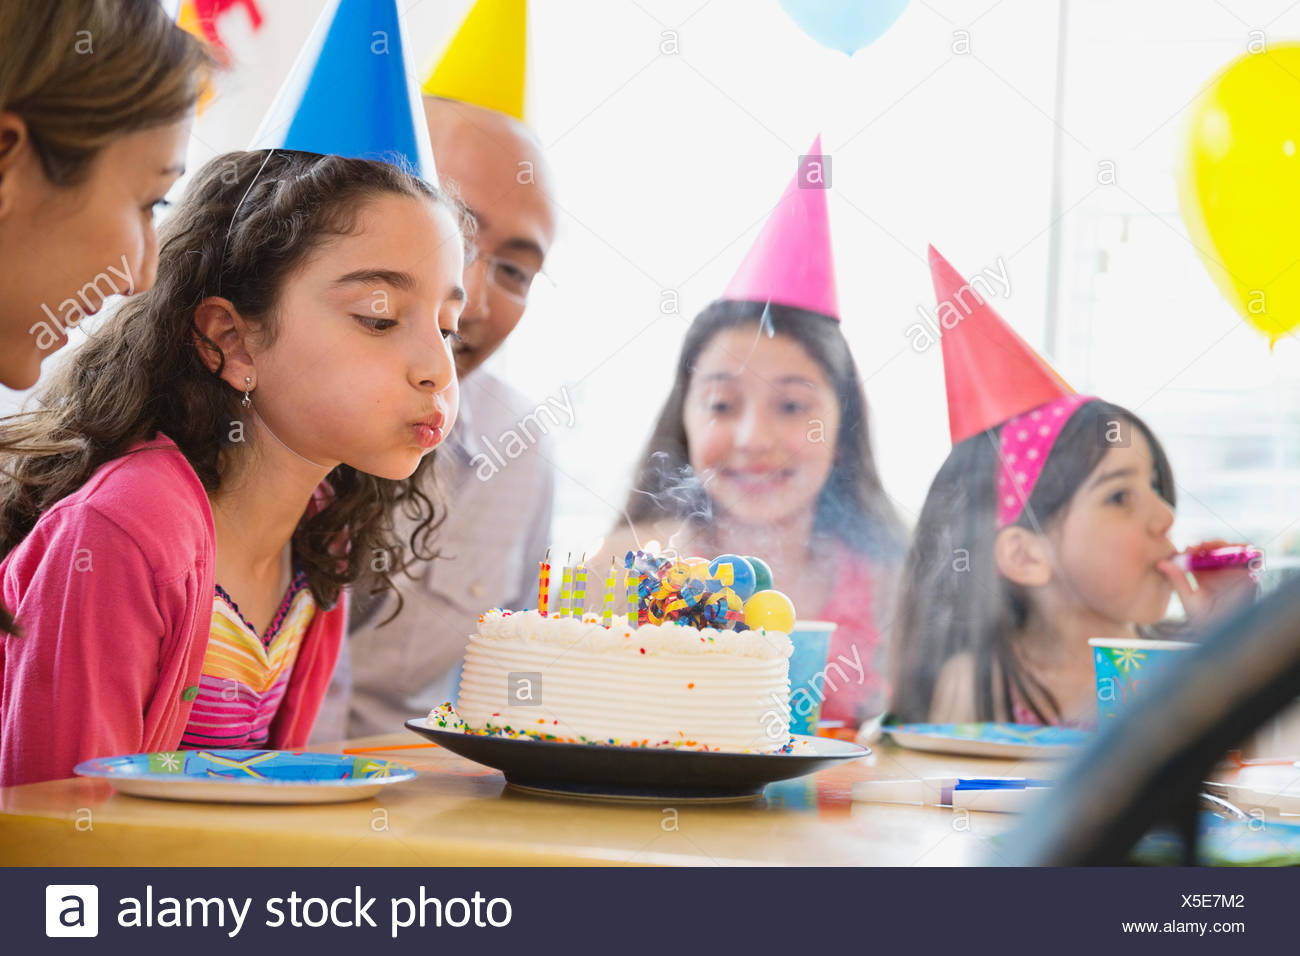 Little girl blowing out candles at birthday party - Stock Image